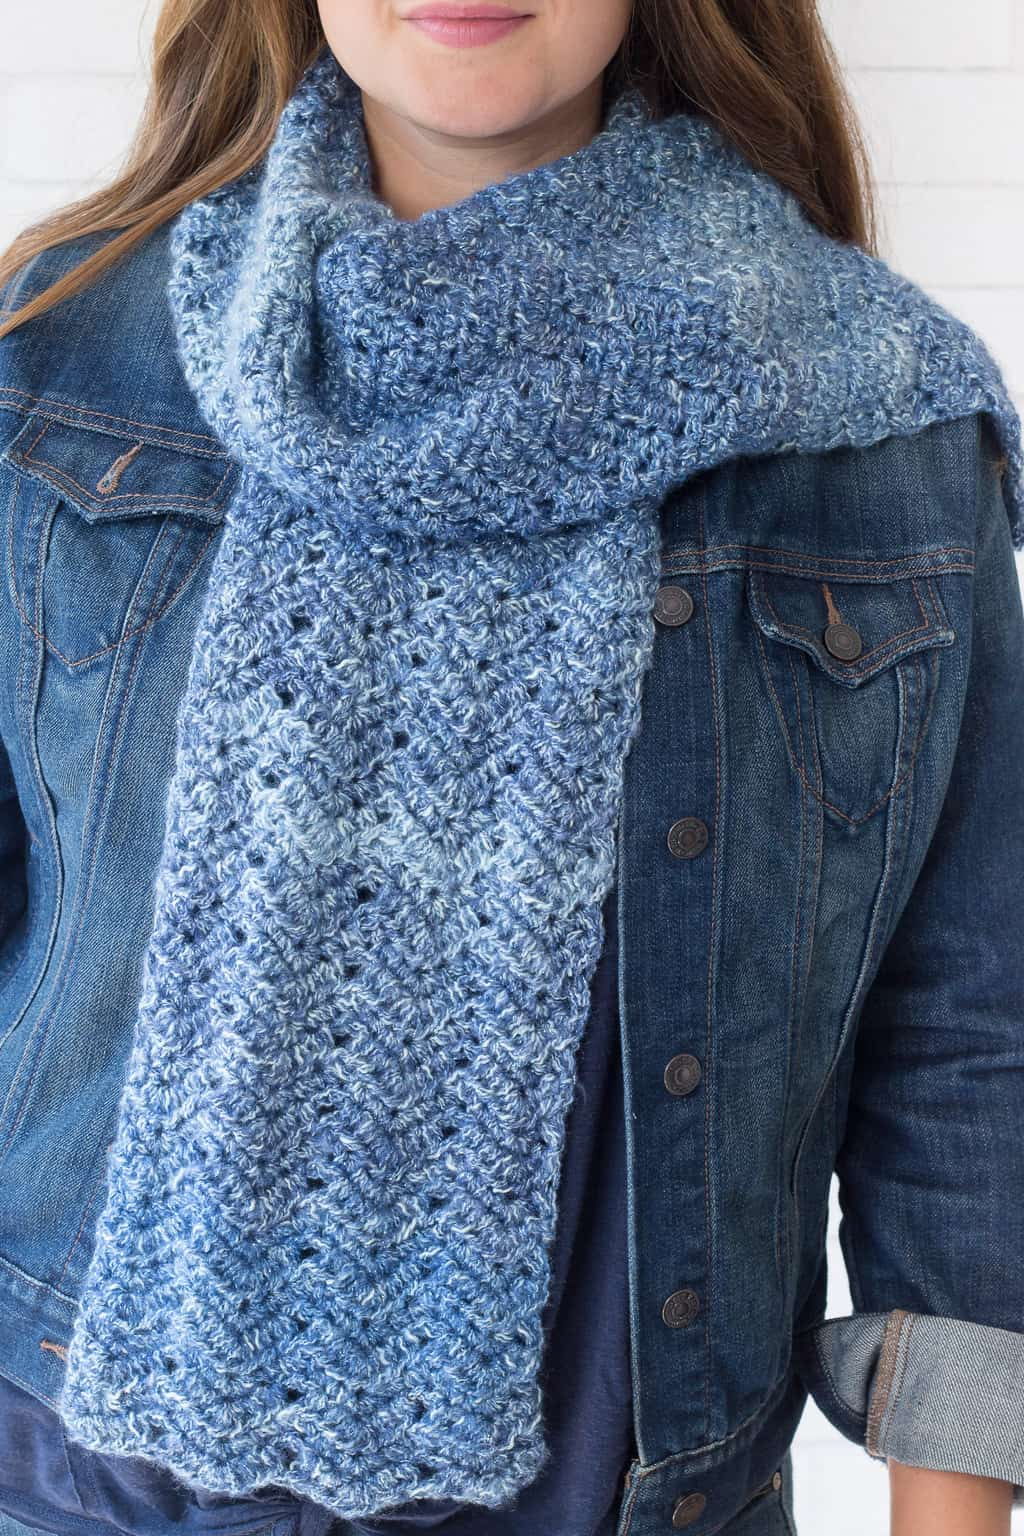 Luna Chevron Scarf Free Crochet Pattern by Easy Crochet